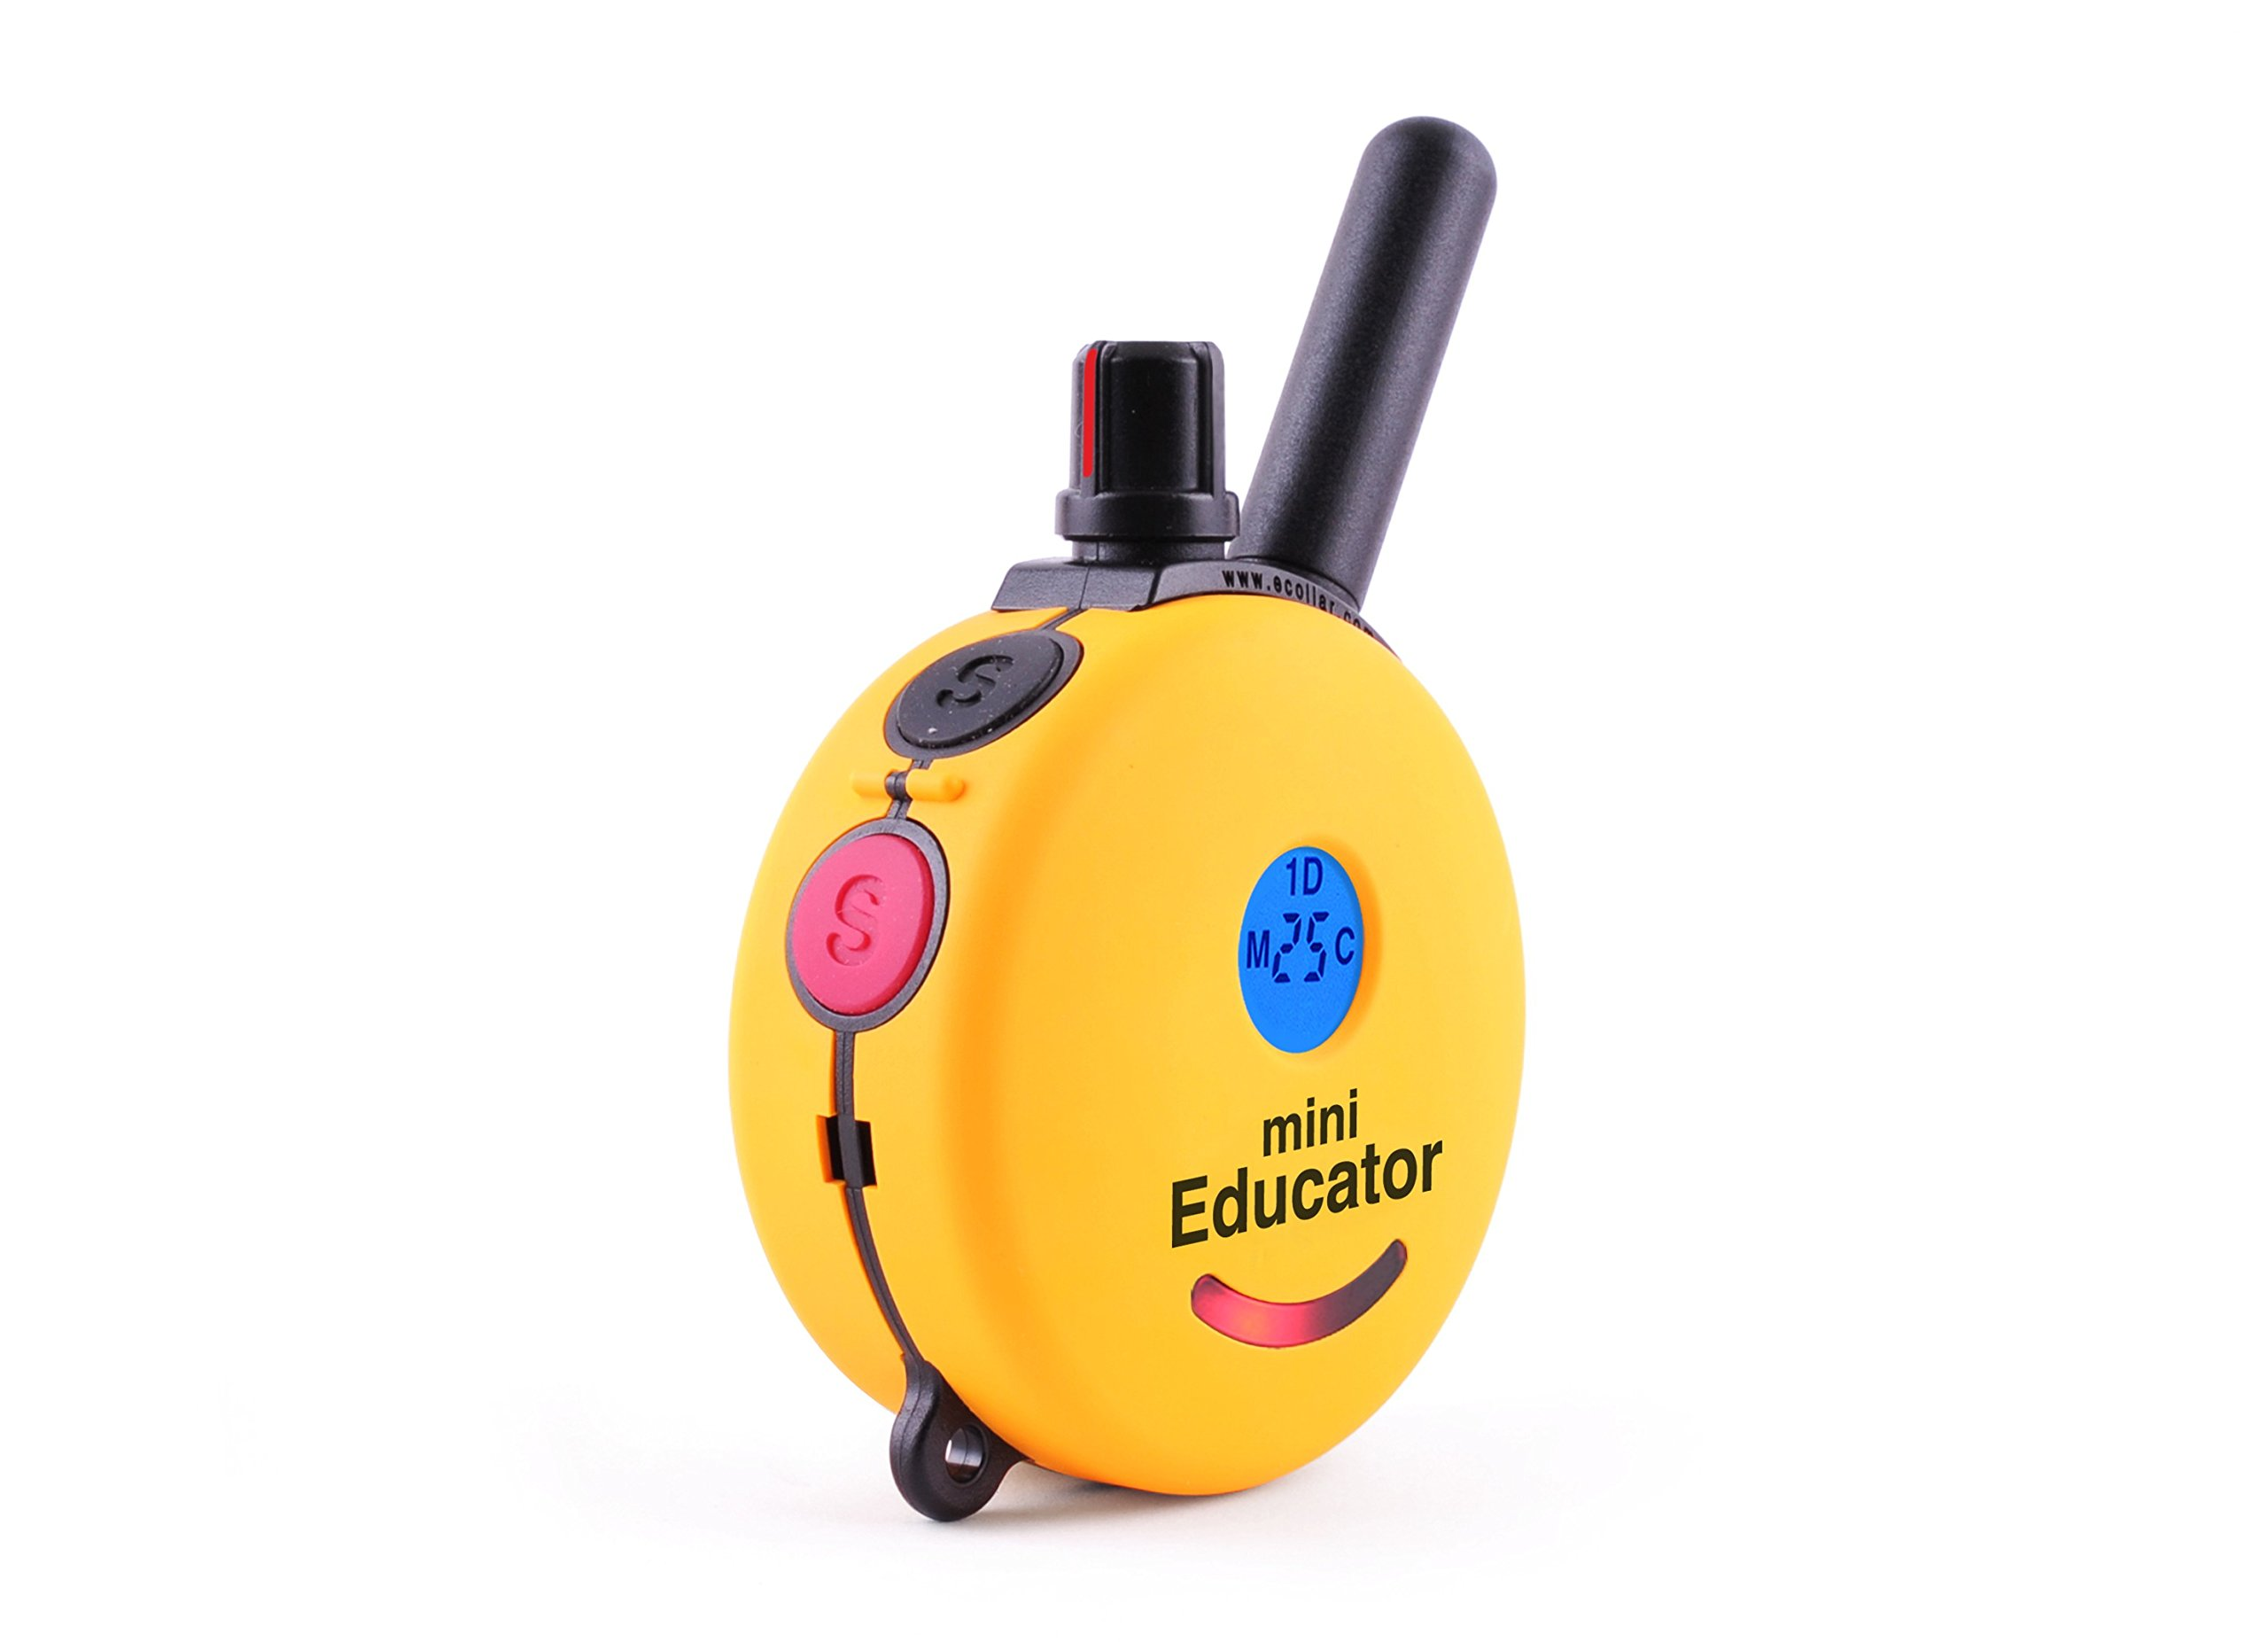 Best Dog Training e Collar - Educator Einstein Remote Trainer - Mini Educator 1/2 Mile Remote Trainer ET-300TS WaterProof - Vibration Tapping Sensation With eOutletDeals Postcard Magnet Calendar by E-Collar Dog Trainer (Image #3)